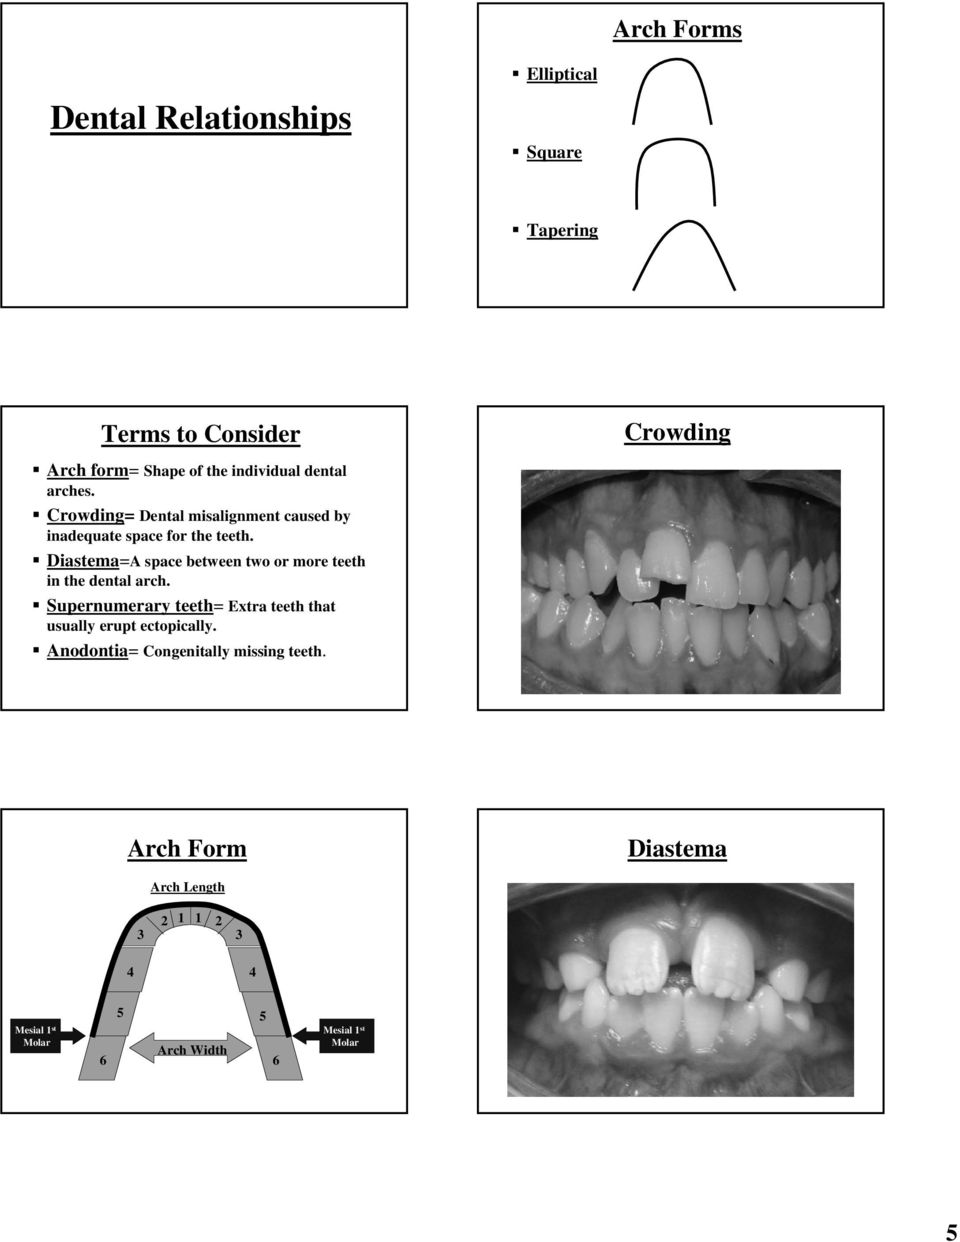 Diastema=A space between two or more teeth in the dental arch.